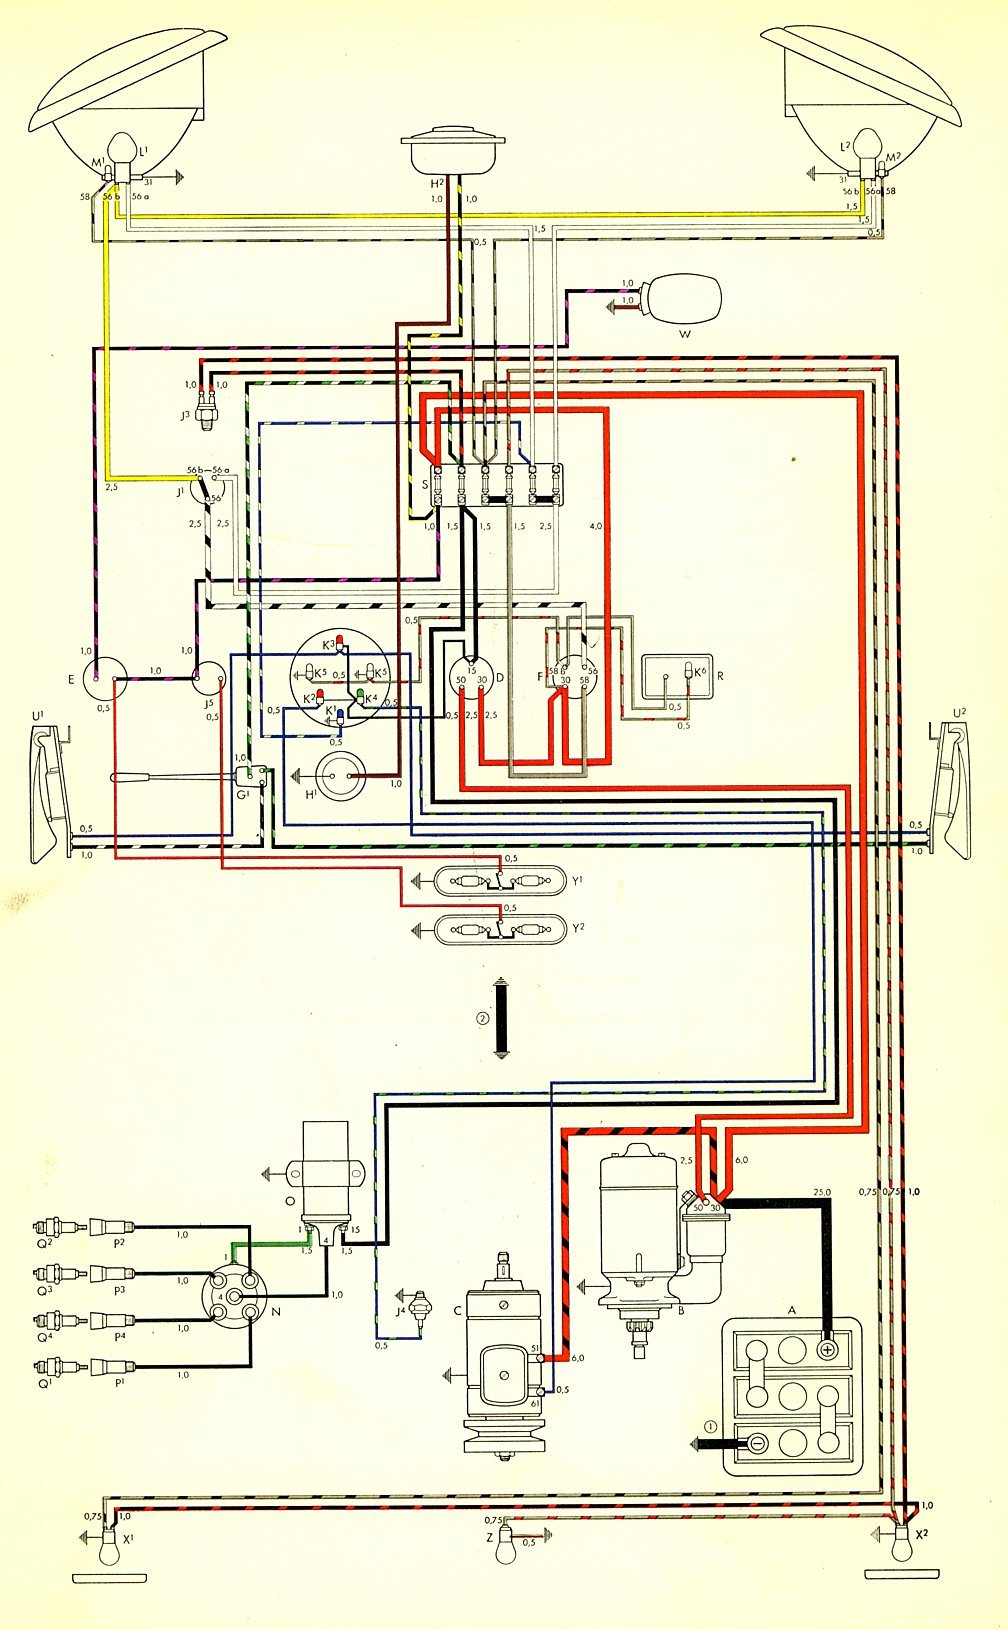 bus_59 wiring diagram for 1971 vw bus readingrat net 1978 vw bus fuse box diagram at cita.asia